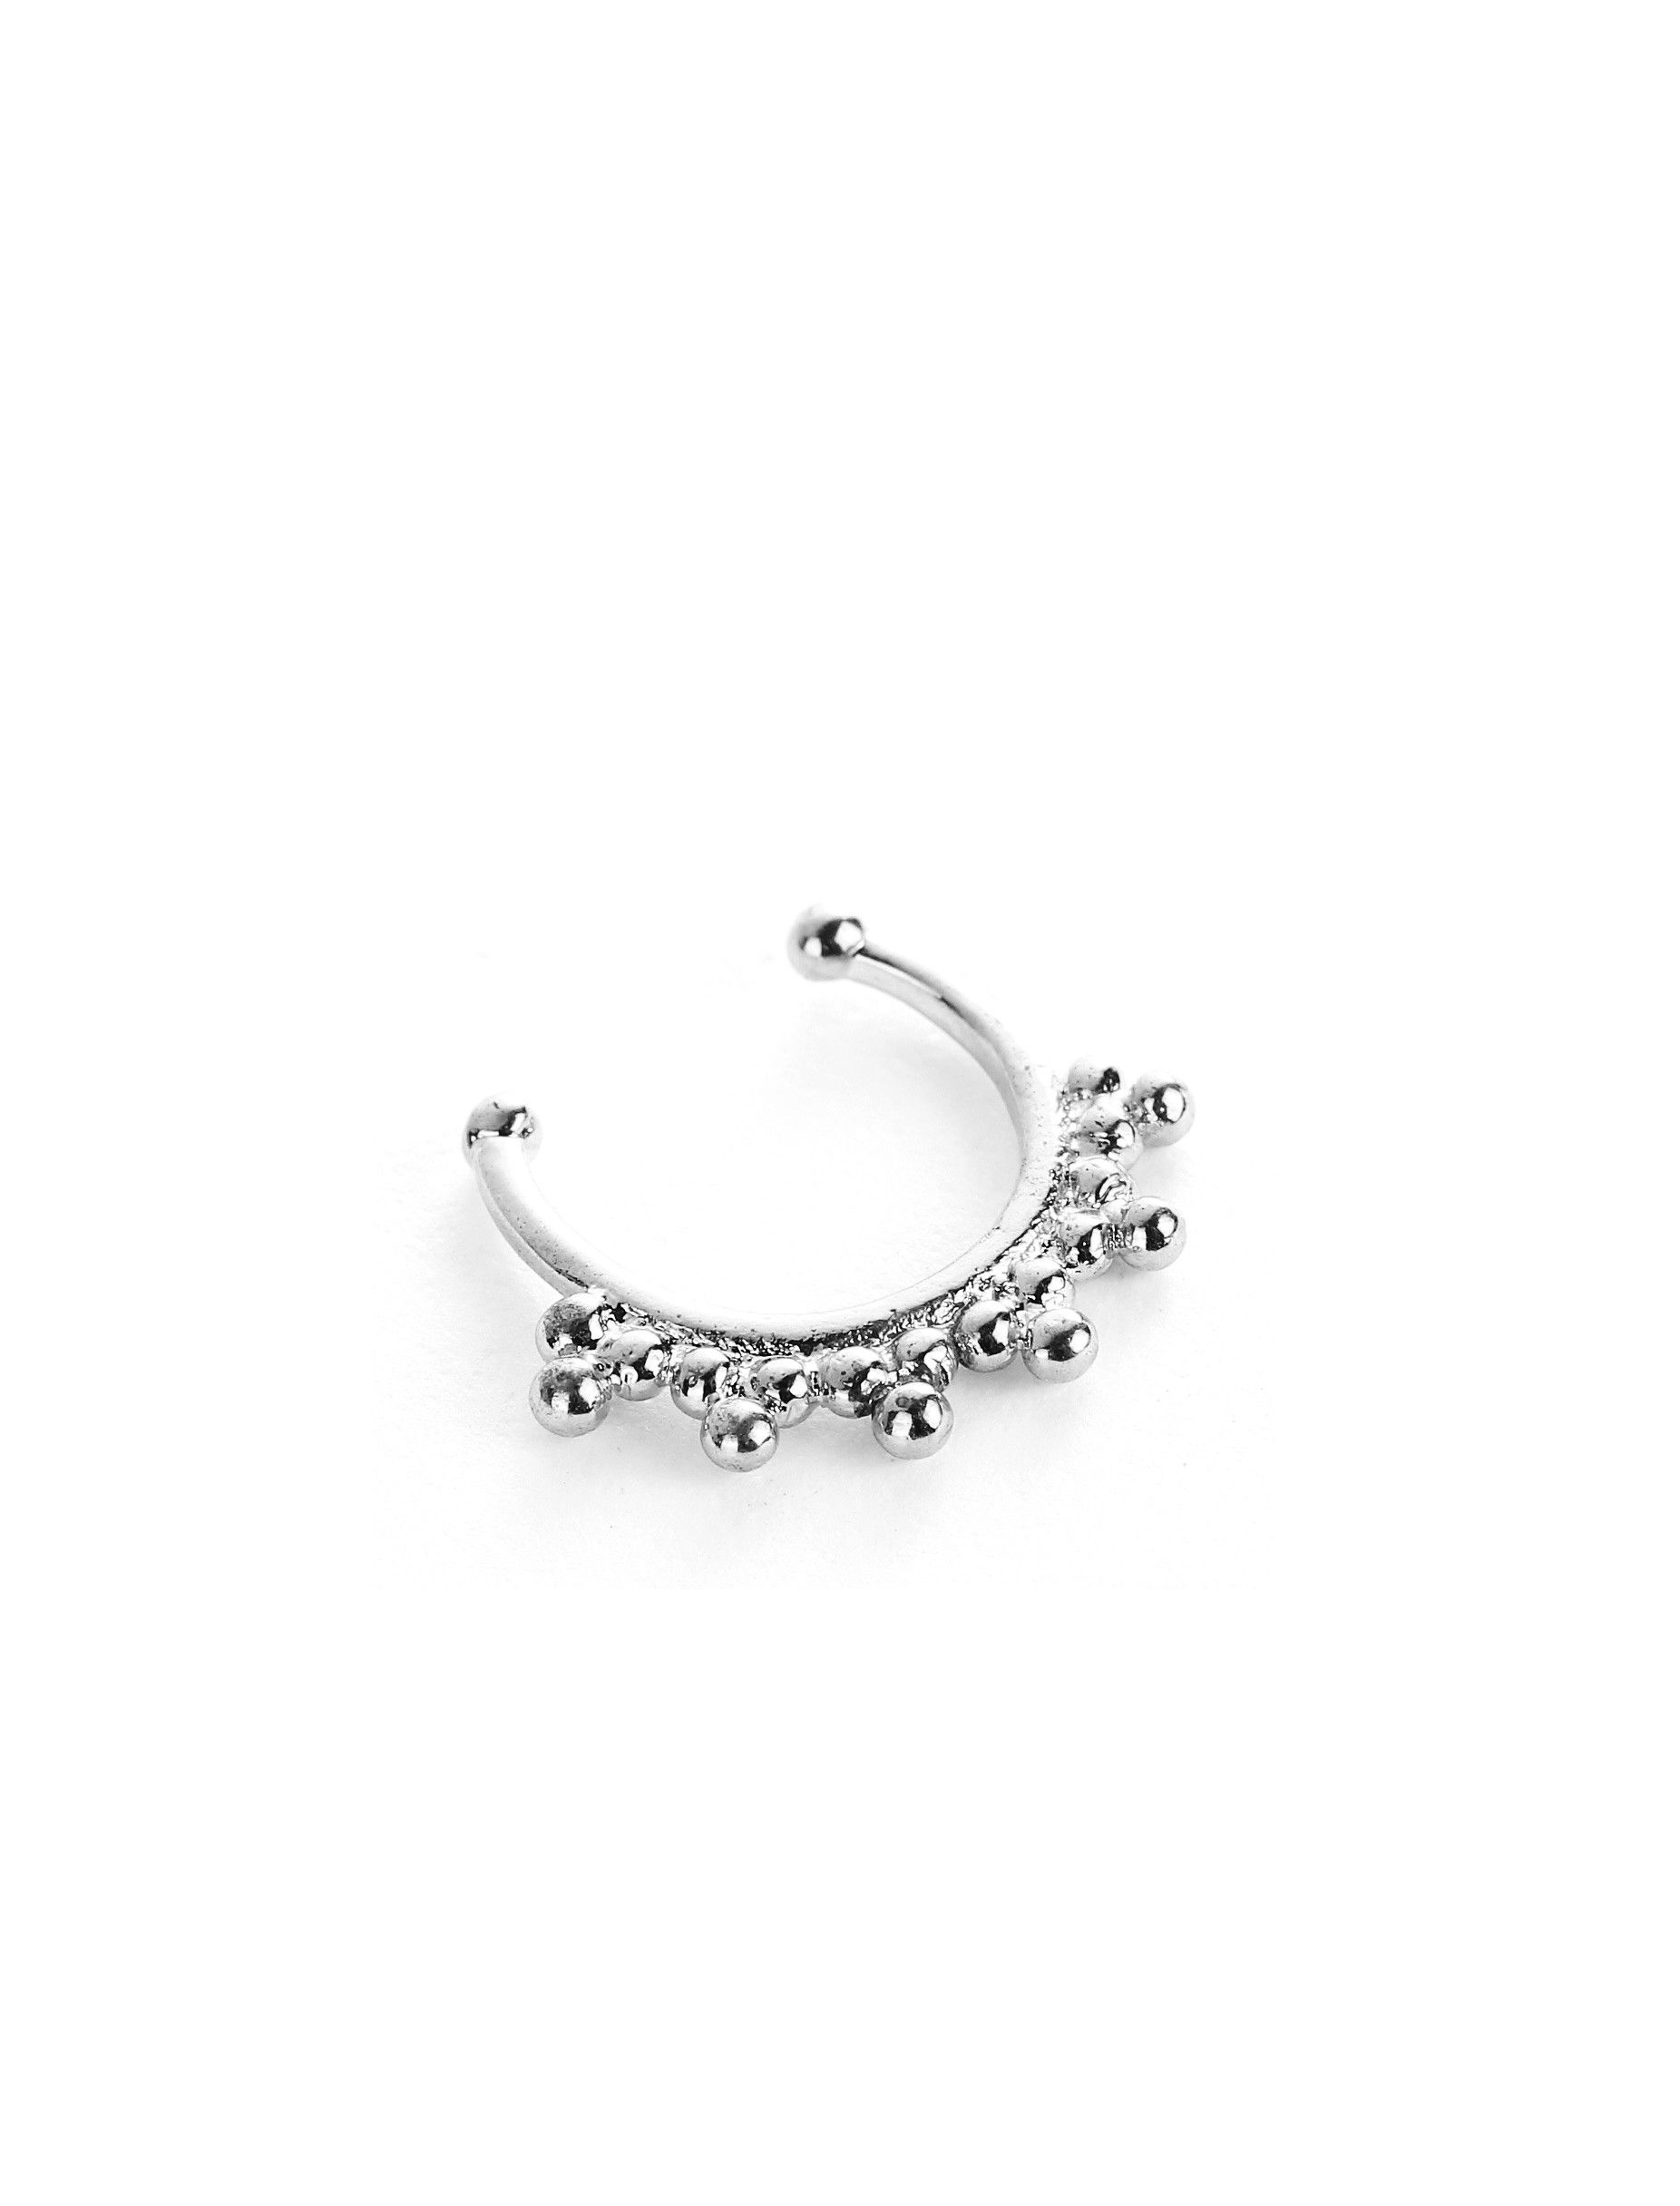 See through nose piercing  ETERNAL SUNSHINE FAUX SEPTUM RING SILVER  FAUX SEPTUM RINGS